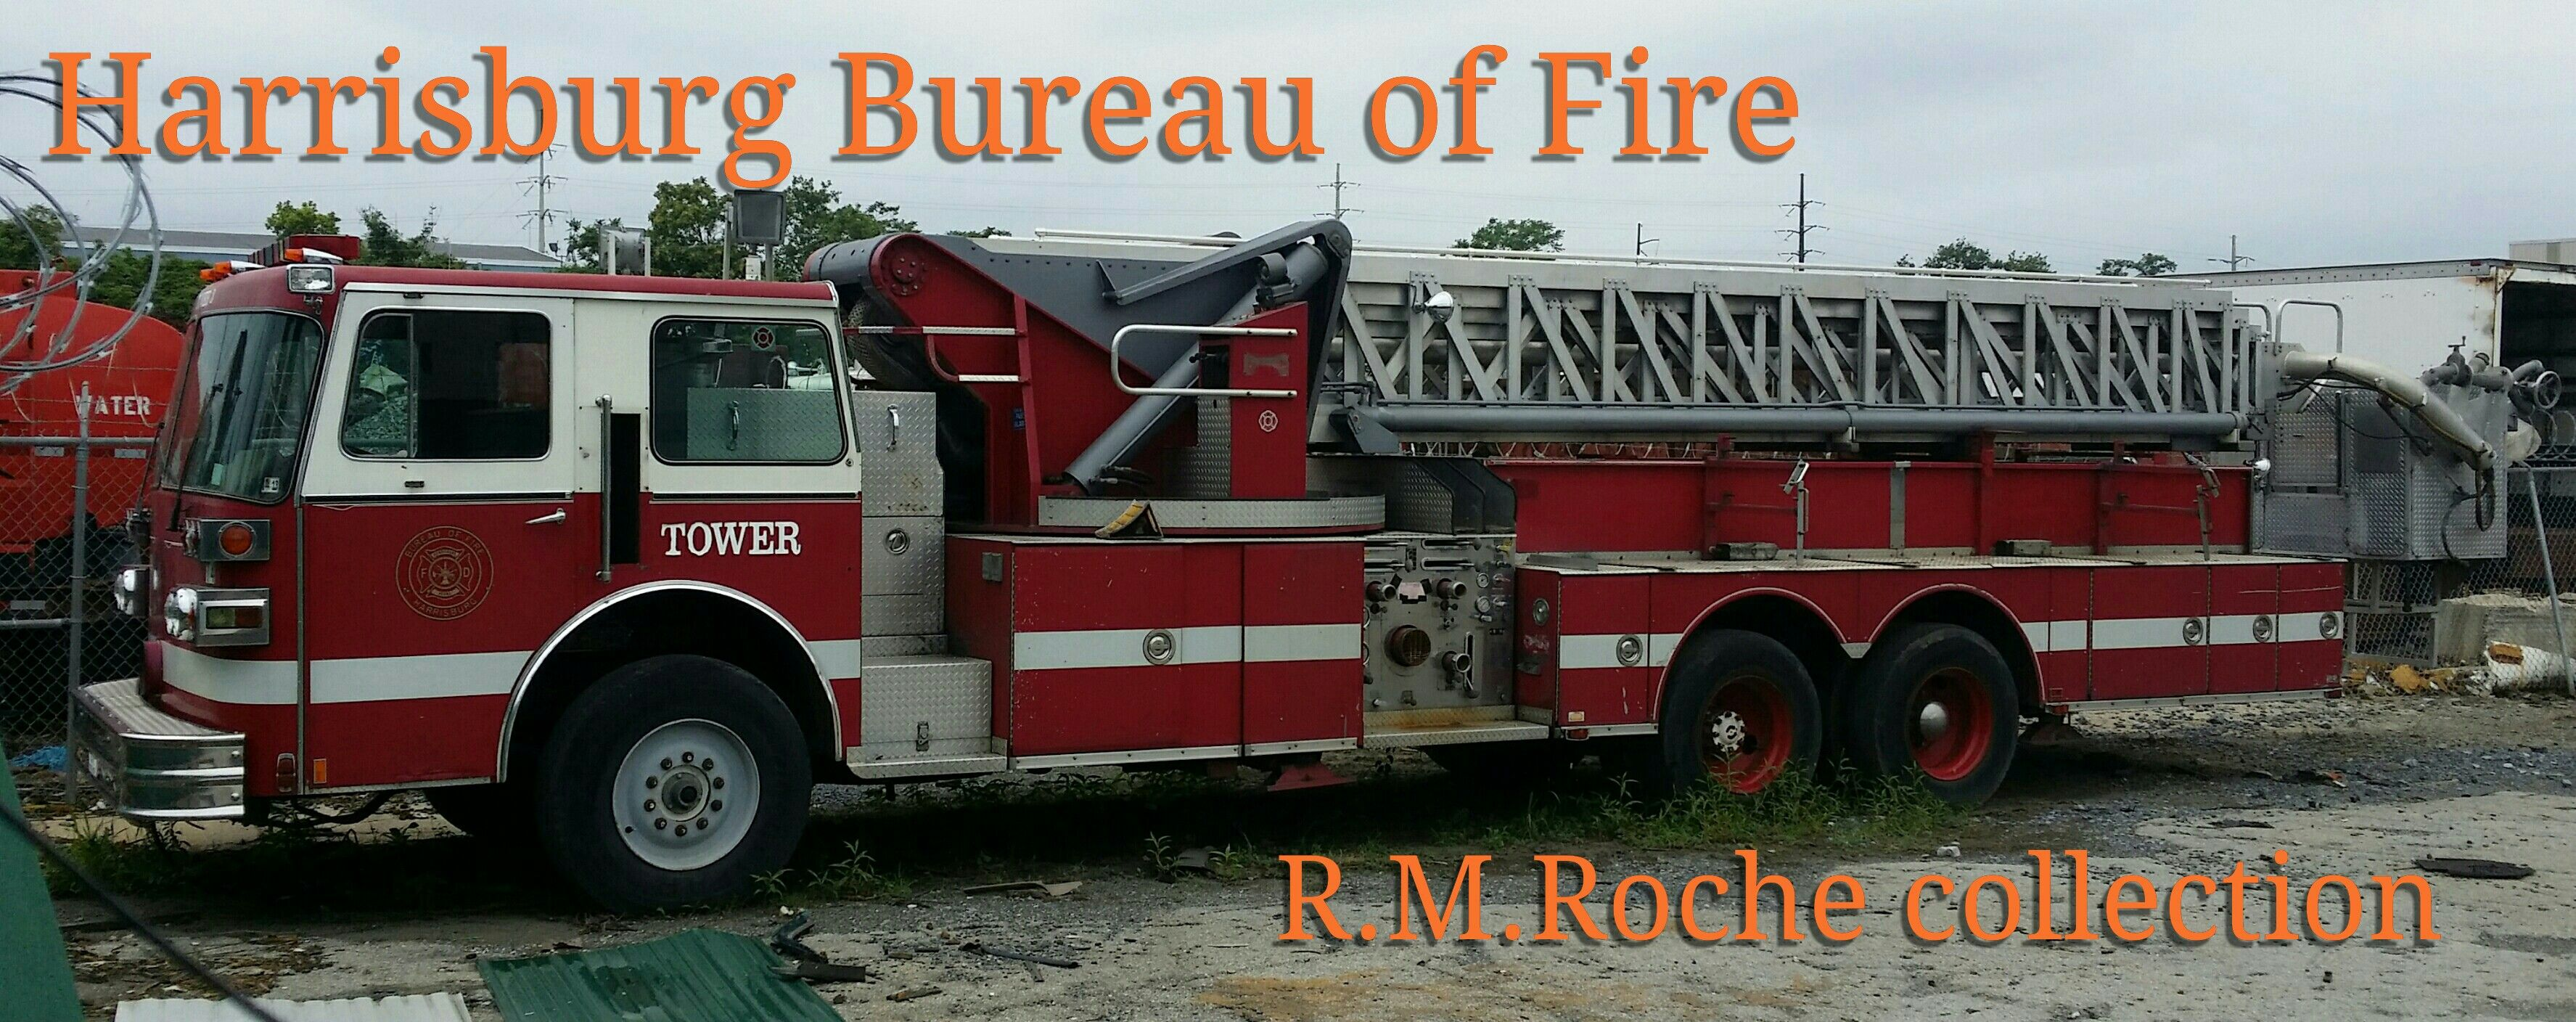 Pin by Richard Roche on Fire & Emergency Services Fire